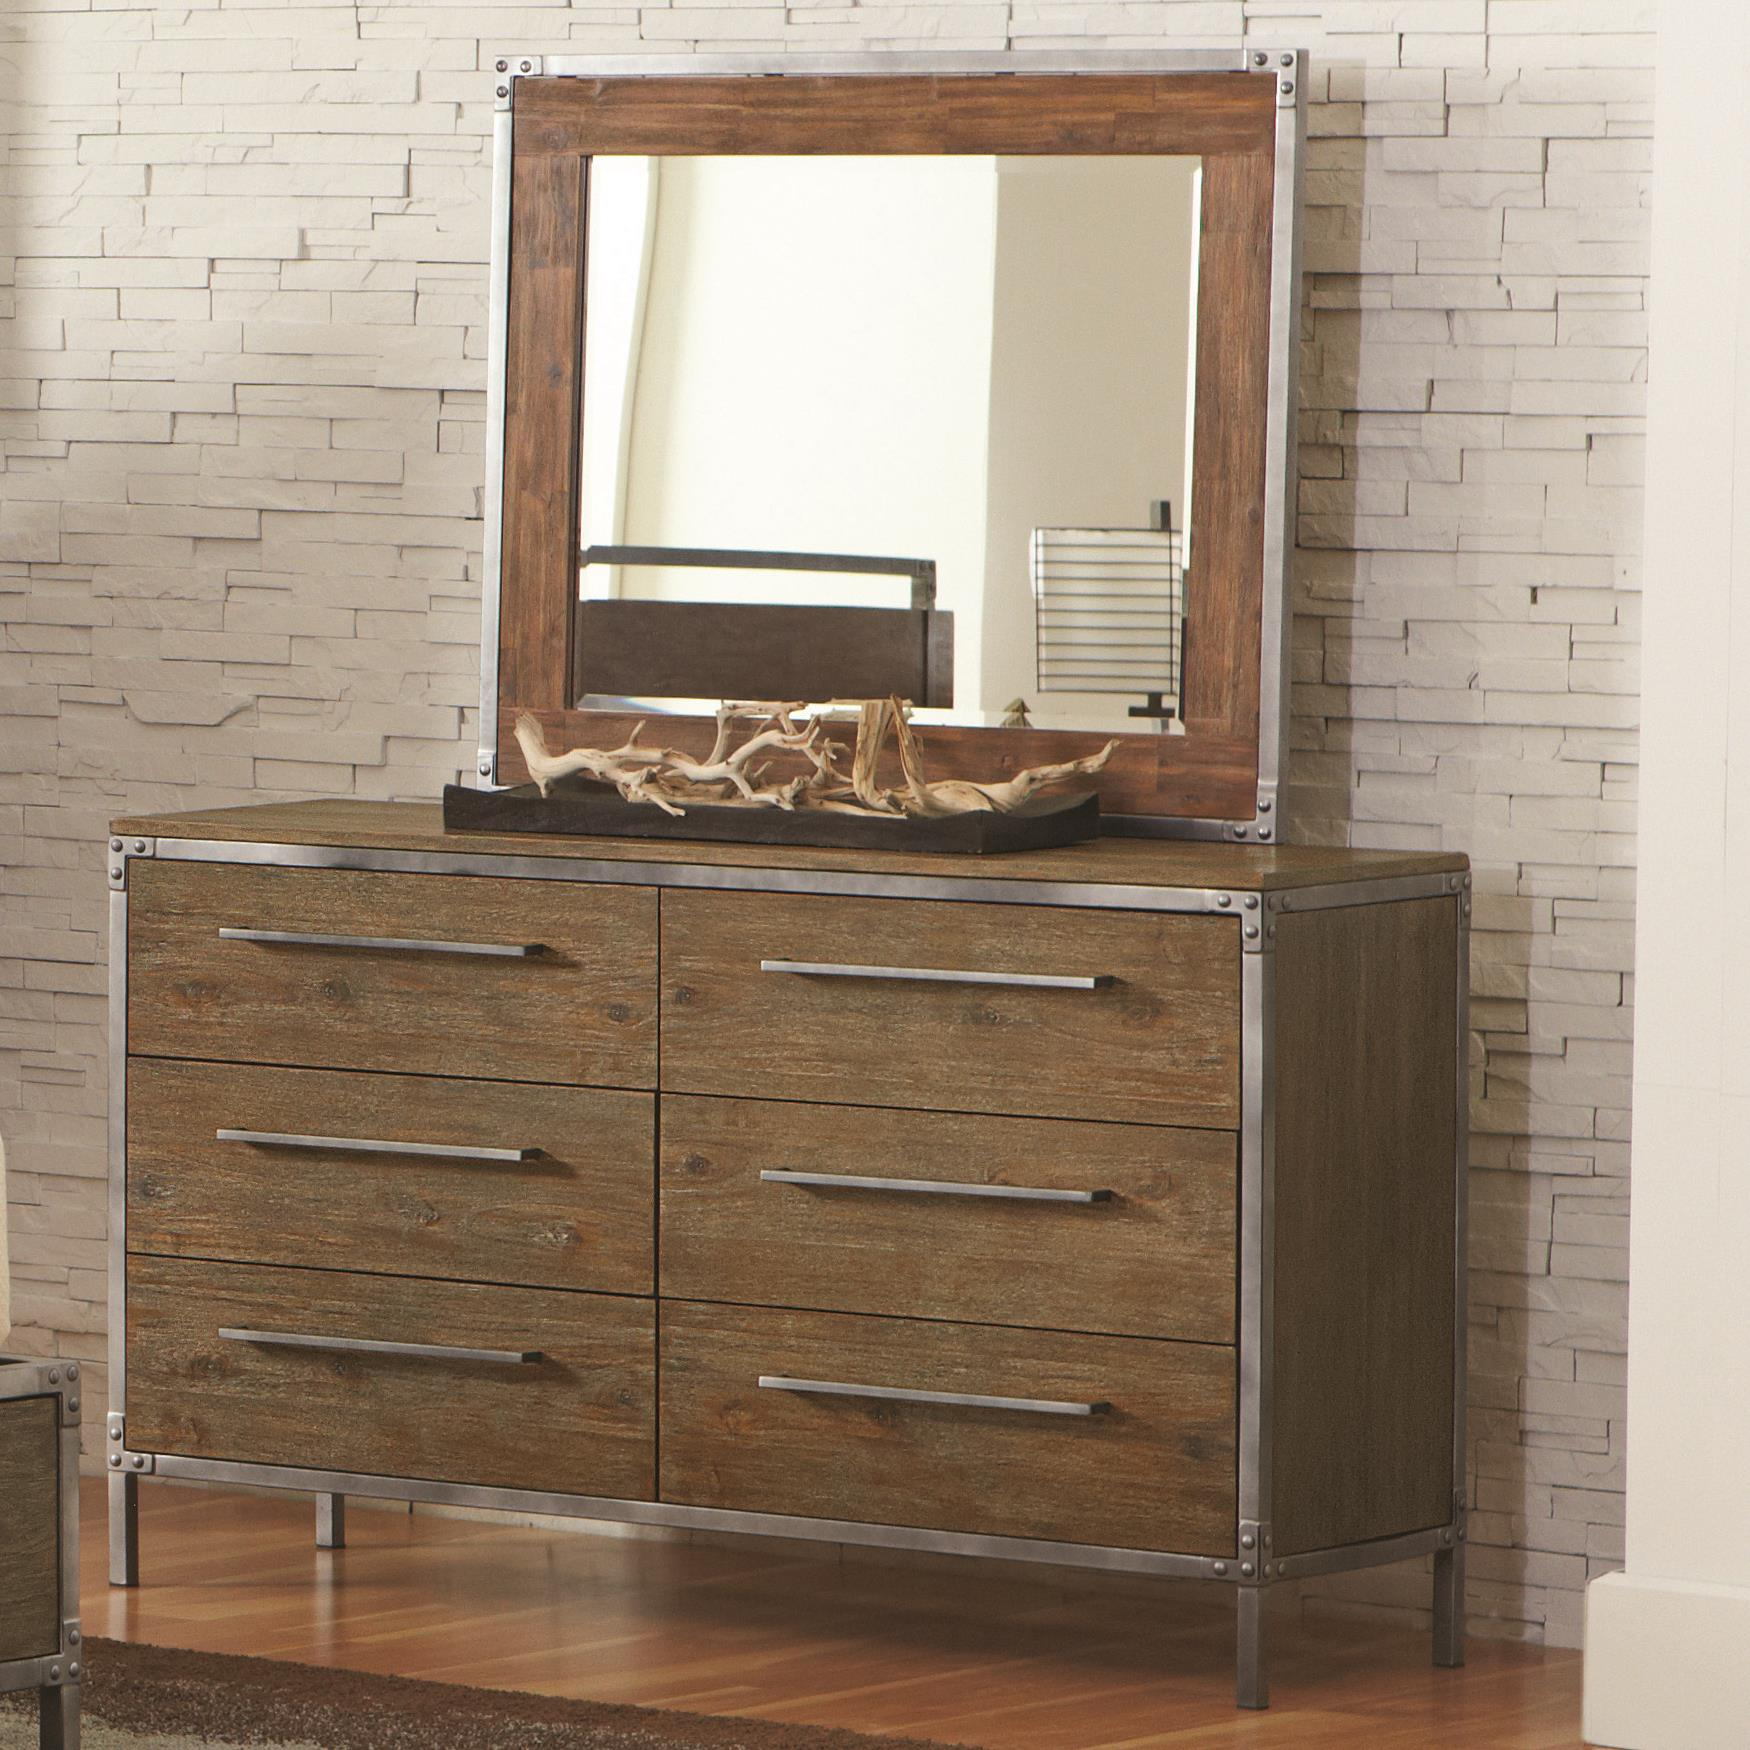 Coaster Arcadia 20380 6 Drawer Dresser & Mirror - Item Number: 203803+203804